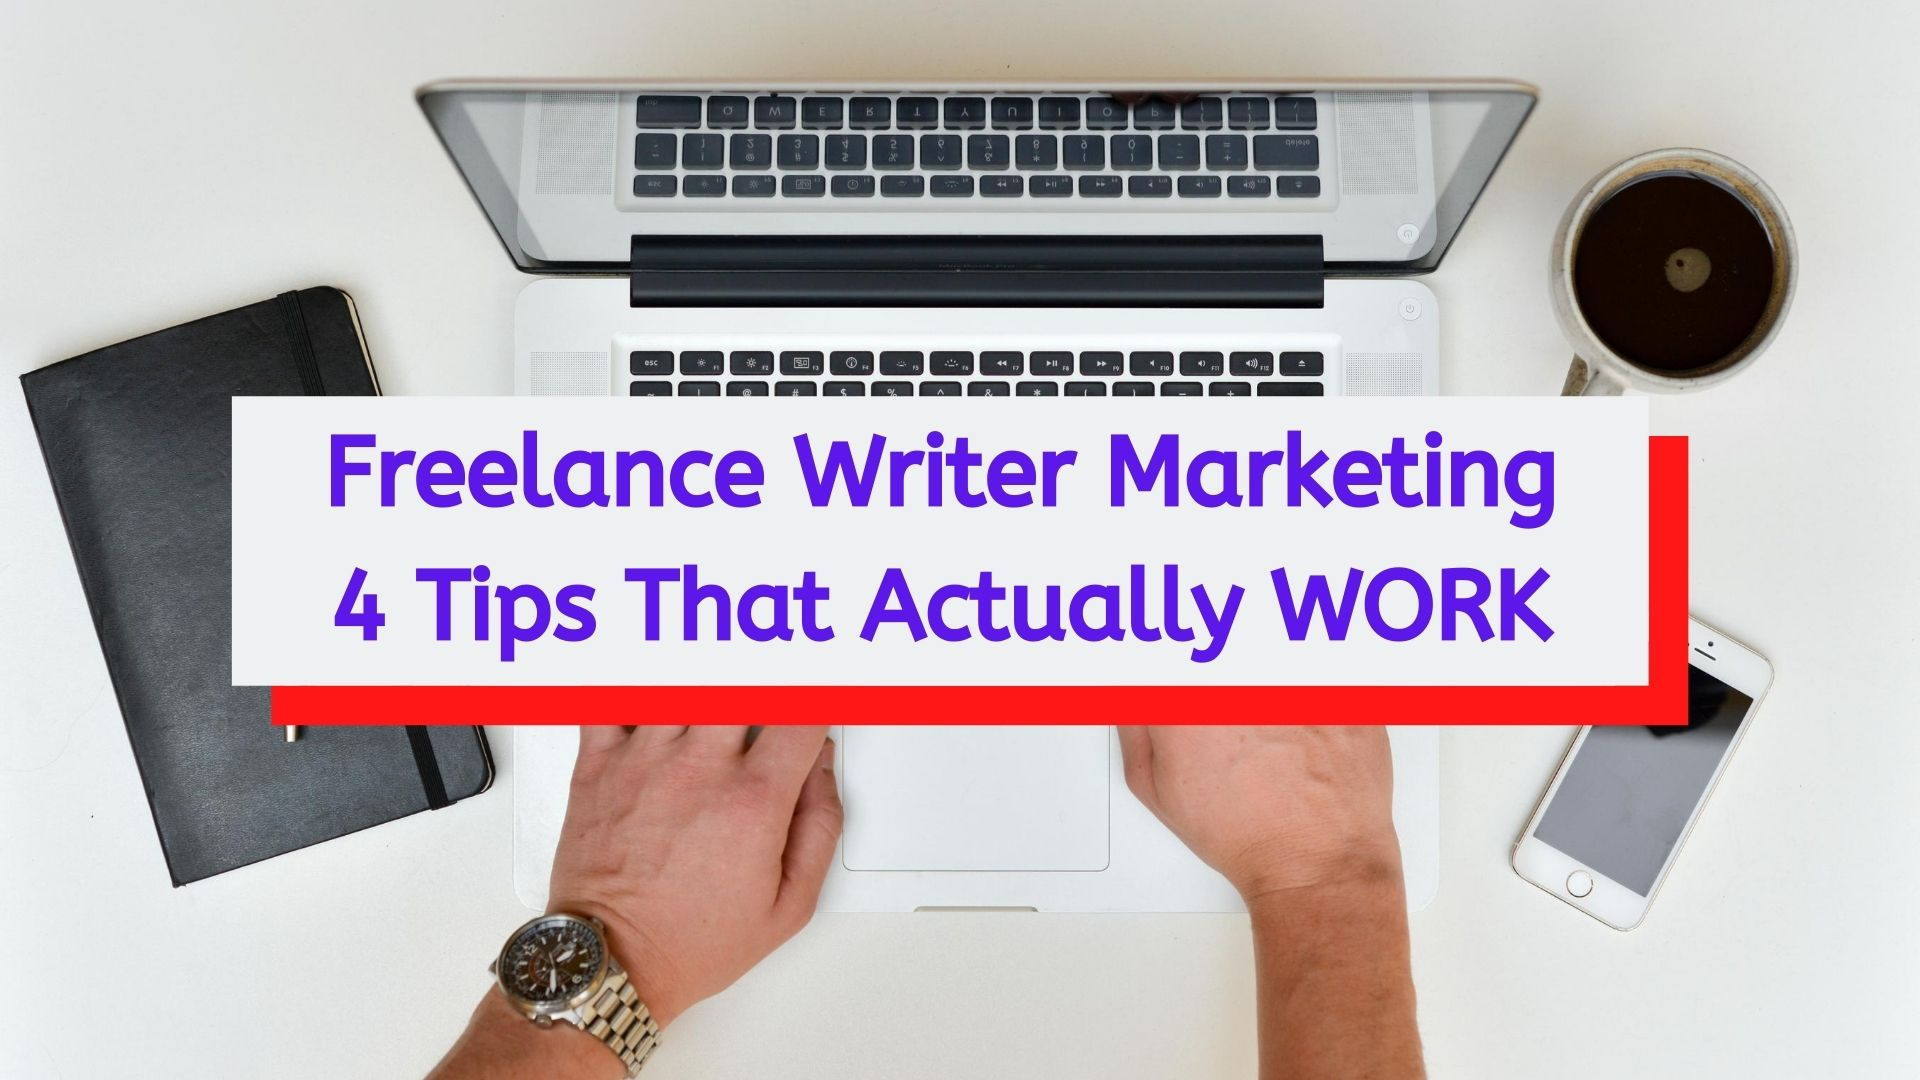 4 Tips To Market Yourself As A Freelance Writer